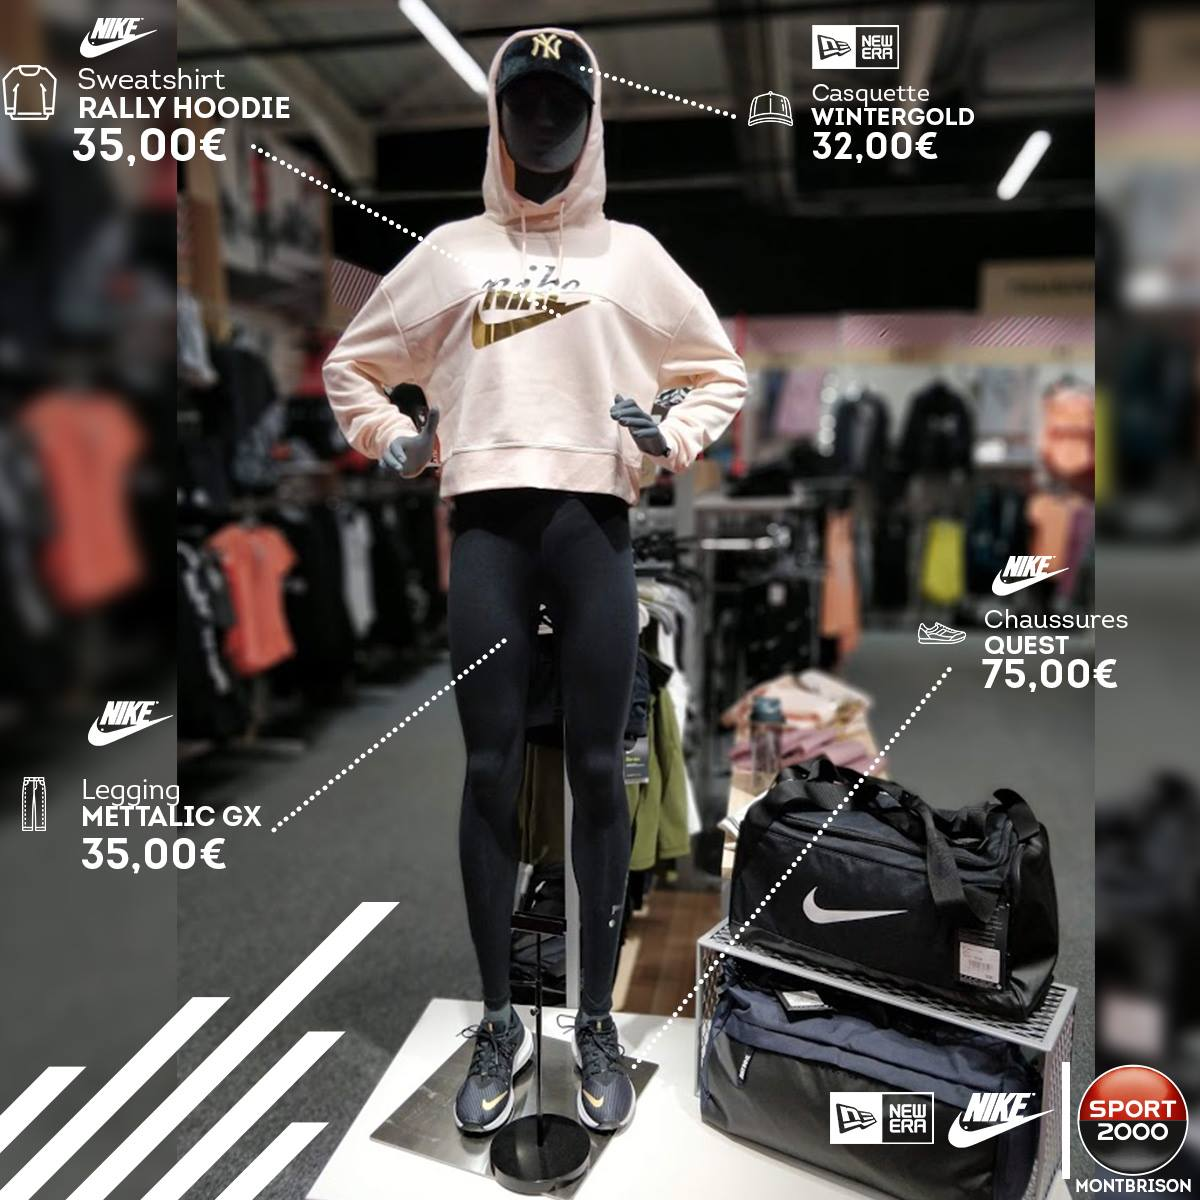 casquette ny femme sport 2000